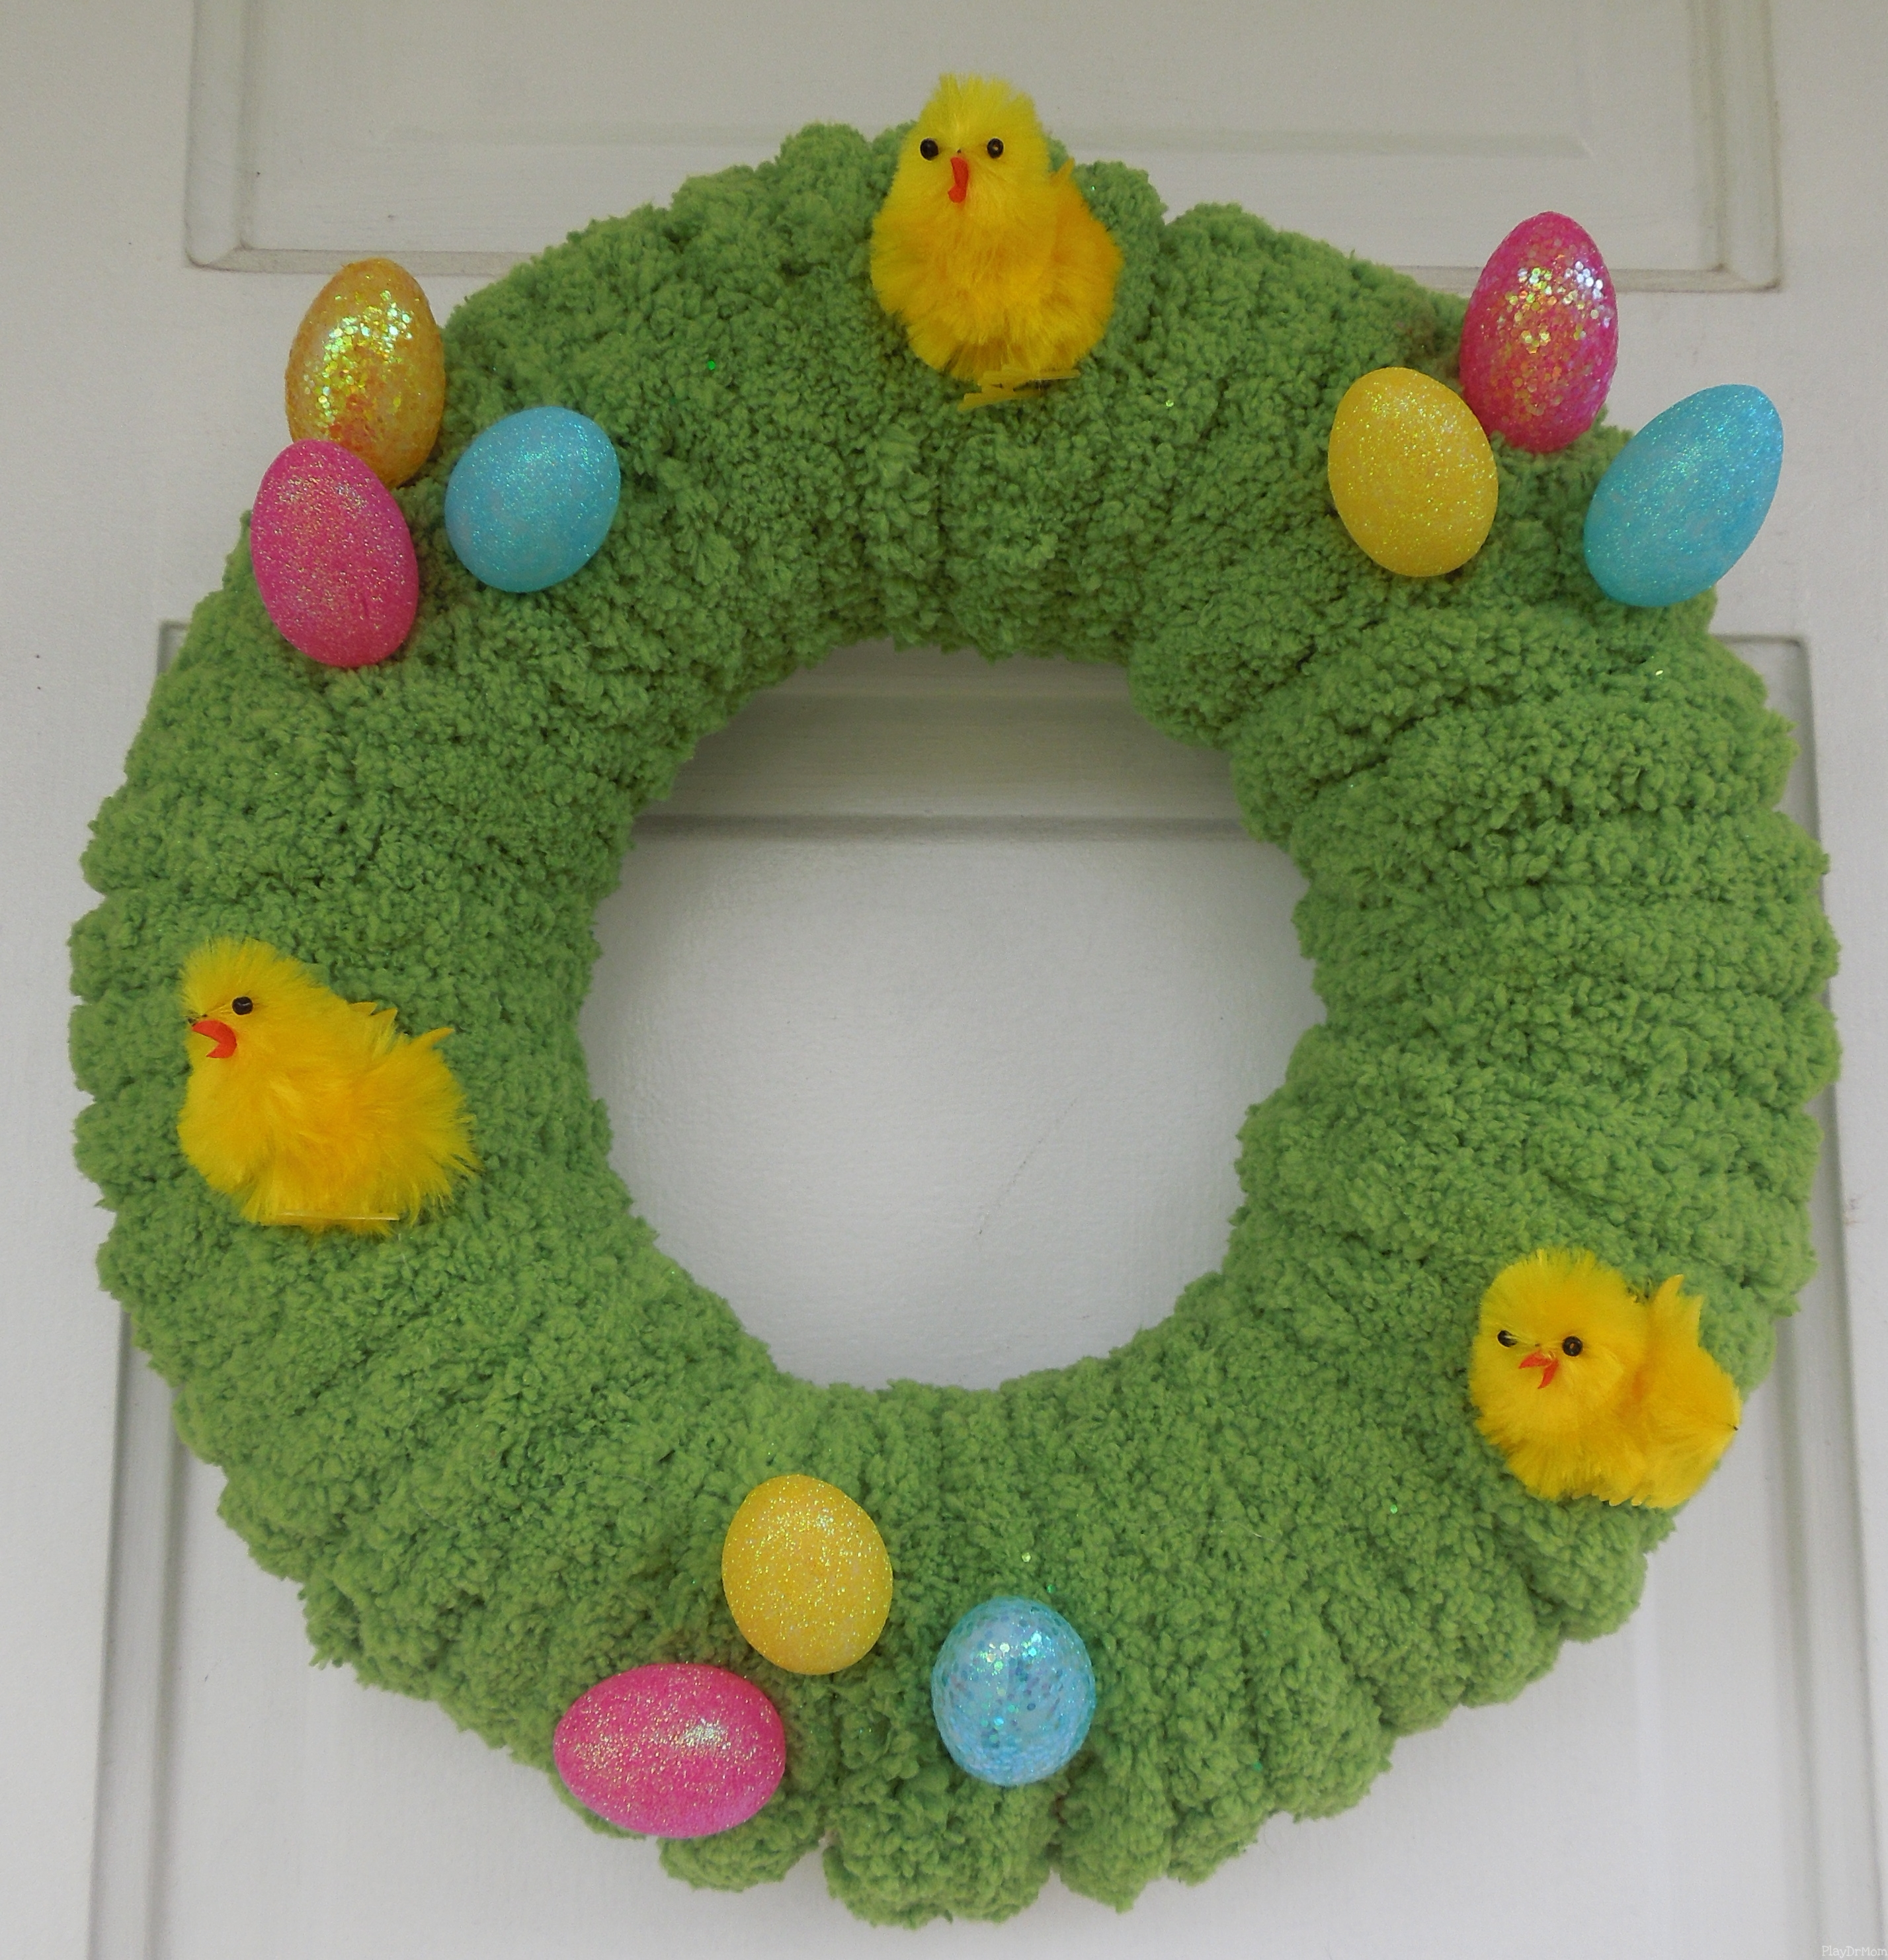 A Springtime Wreath